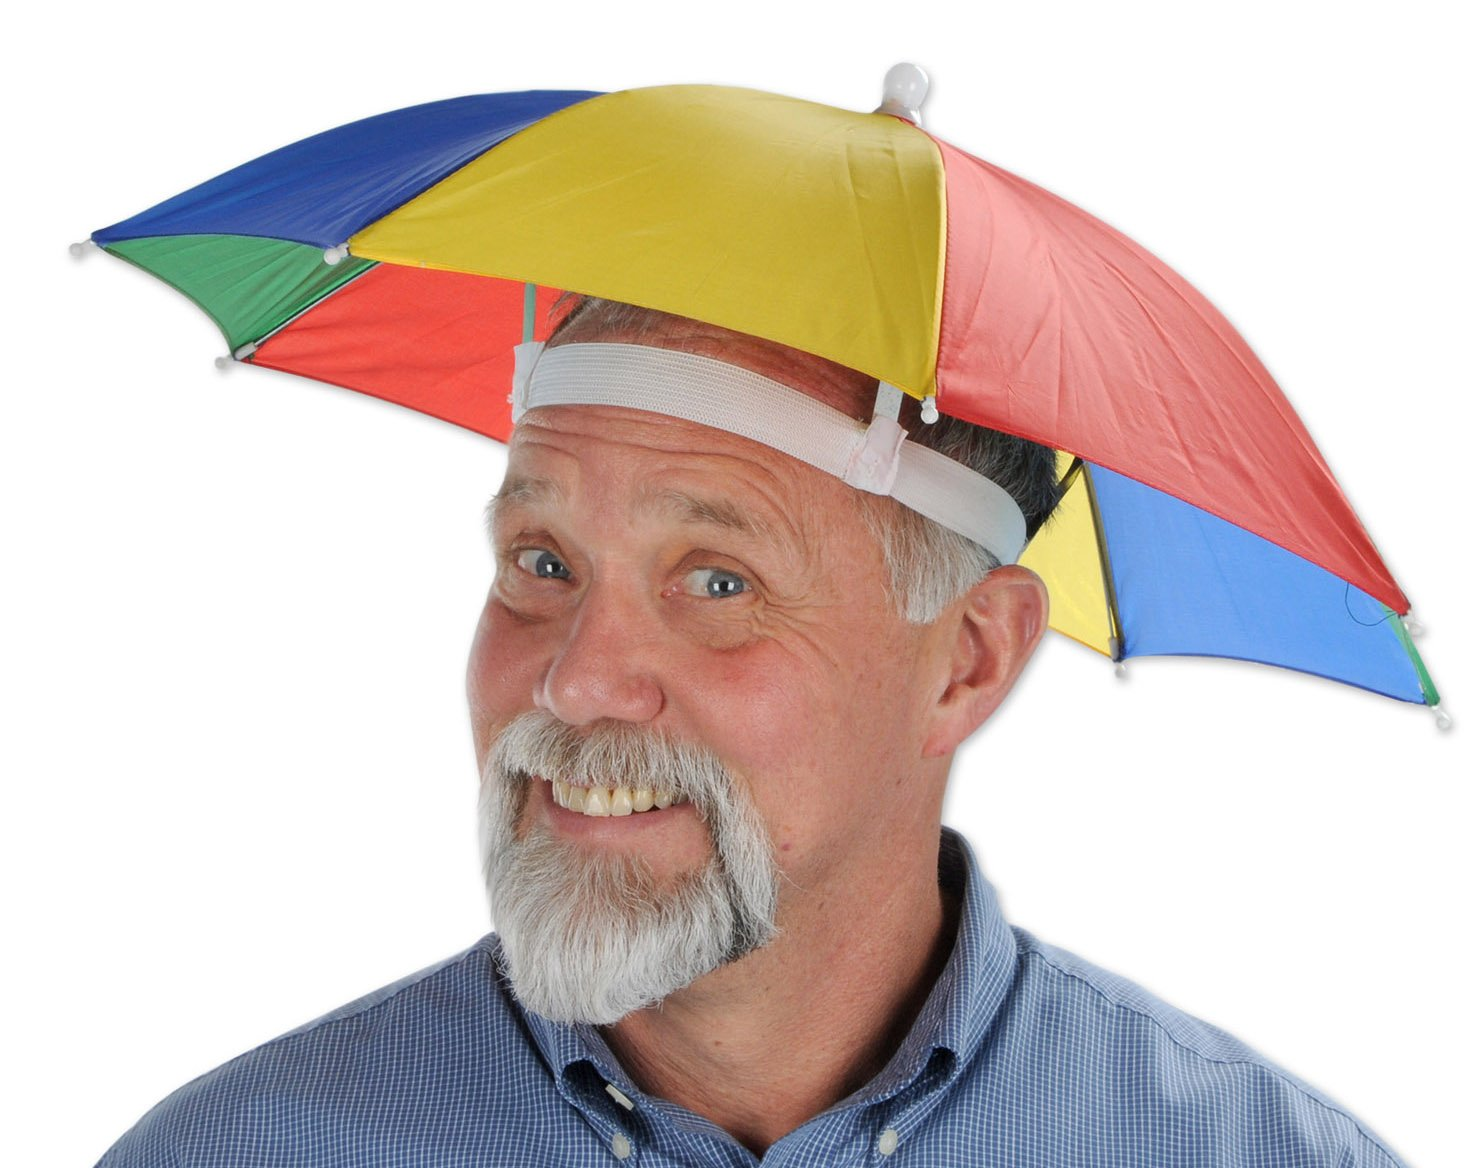 9aae67f54e35b Amazon.com  Beistle 60832 Umbrella Hat  Kitchen   Dining